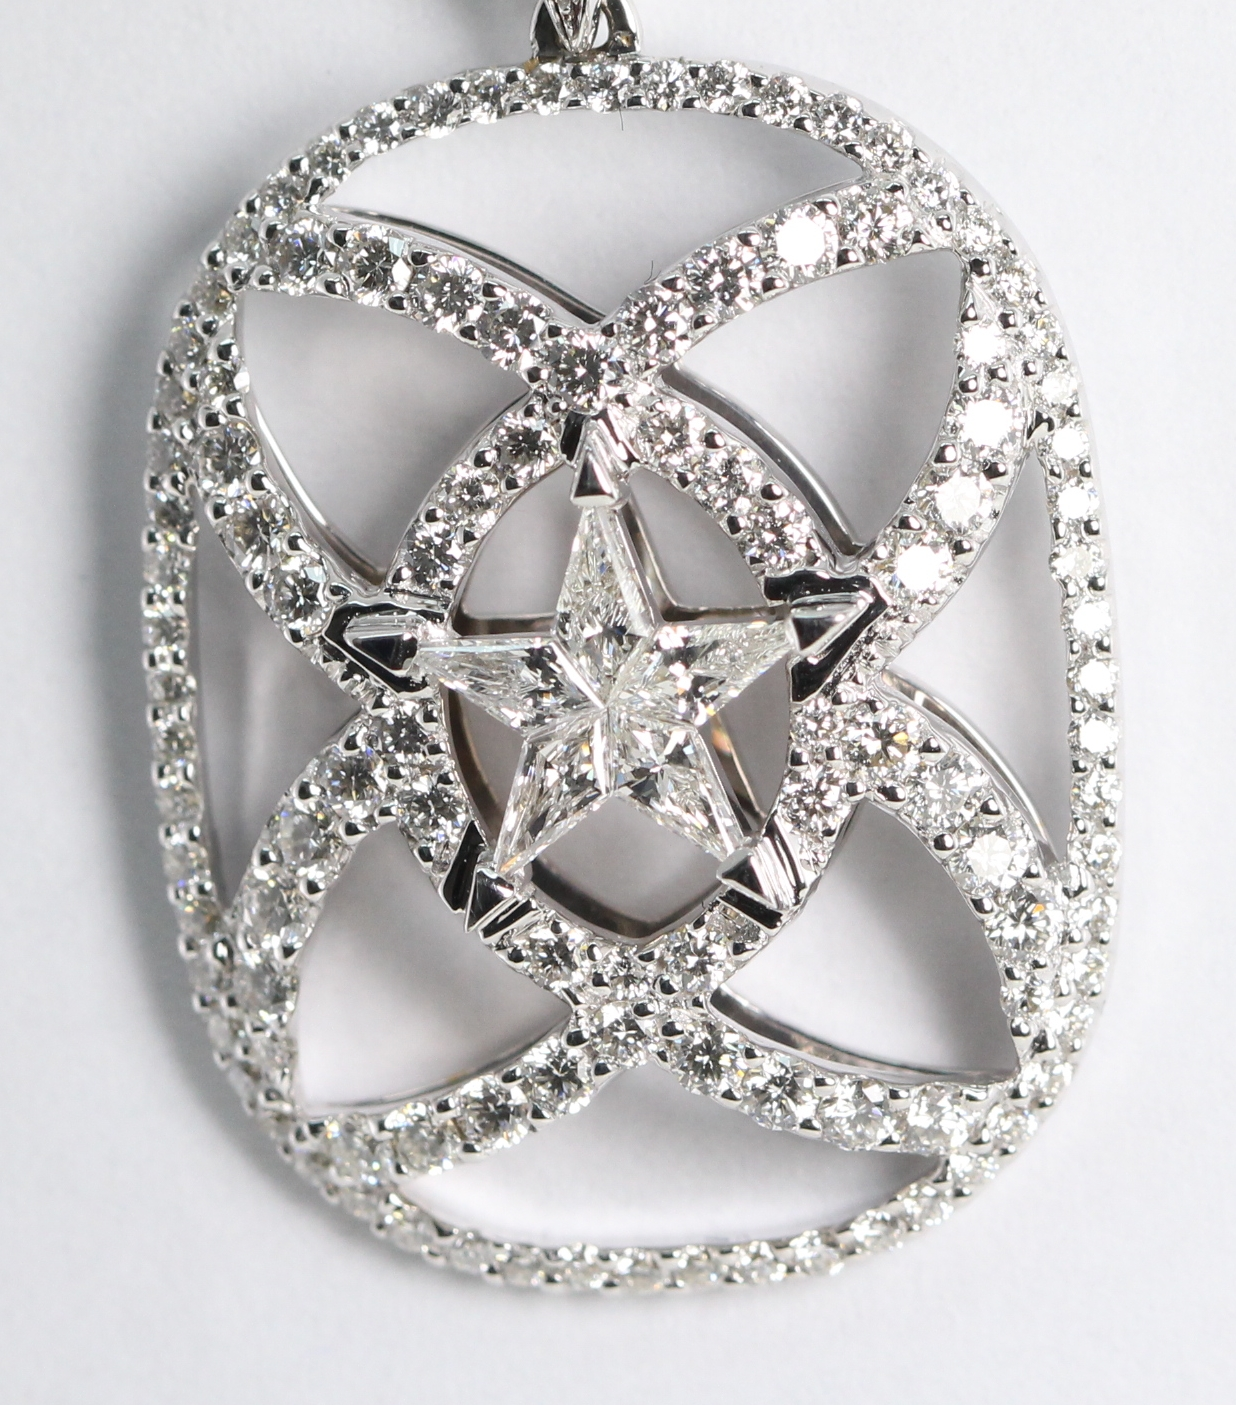 invisible gold purchasing ct is set white color a shaped cut an htm what kite pendants star setting h pendant diamond